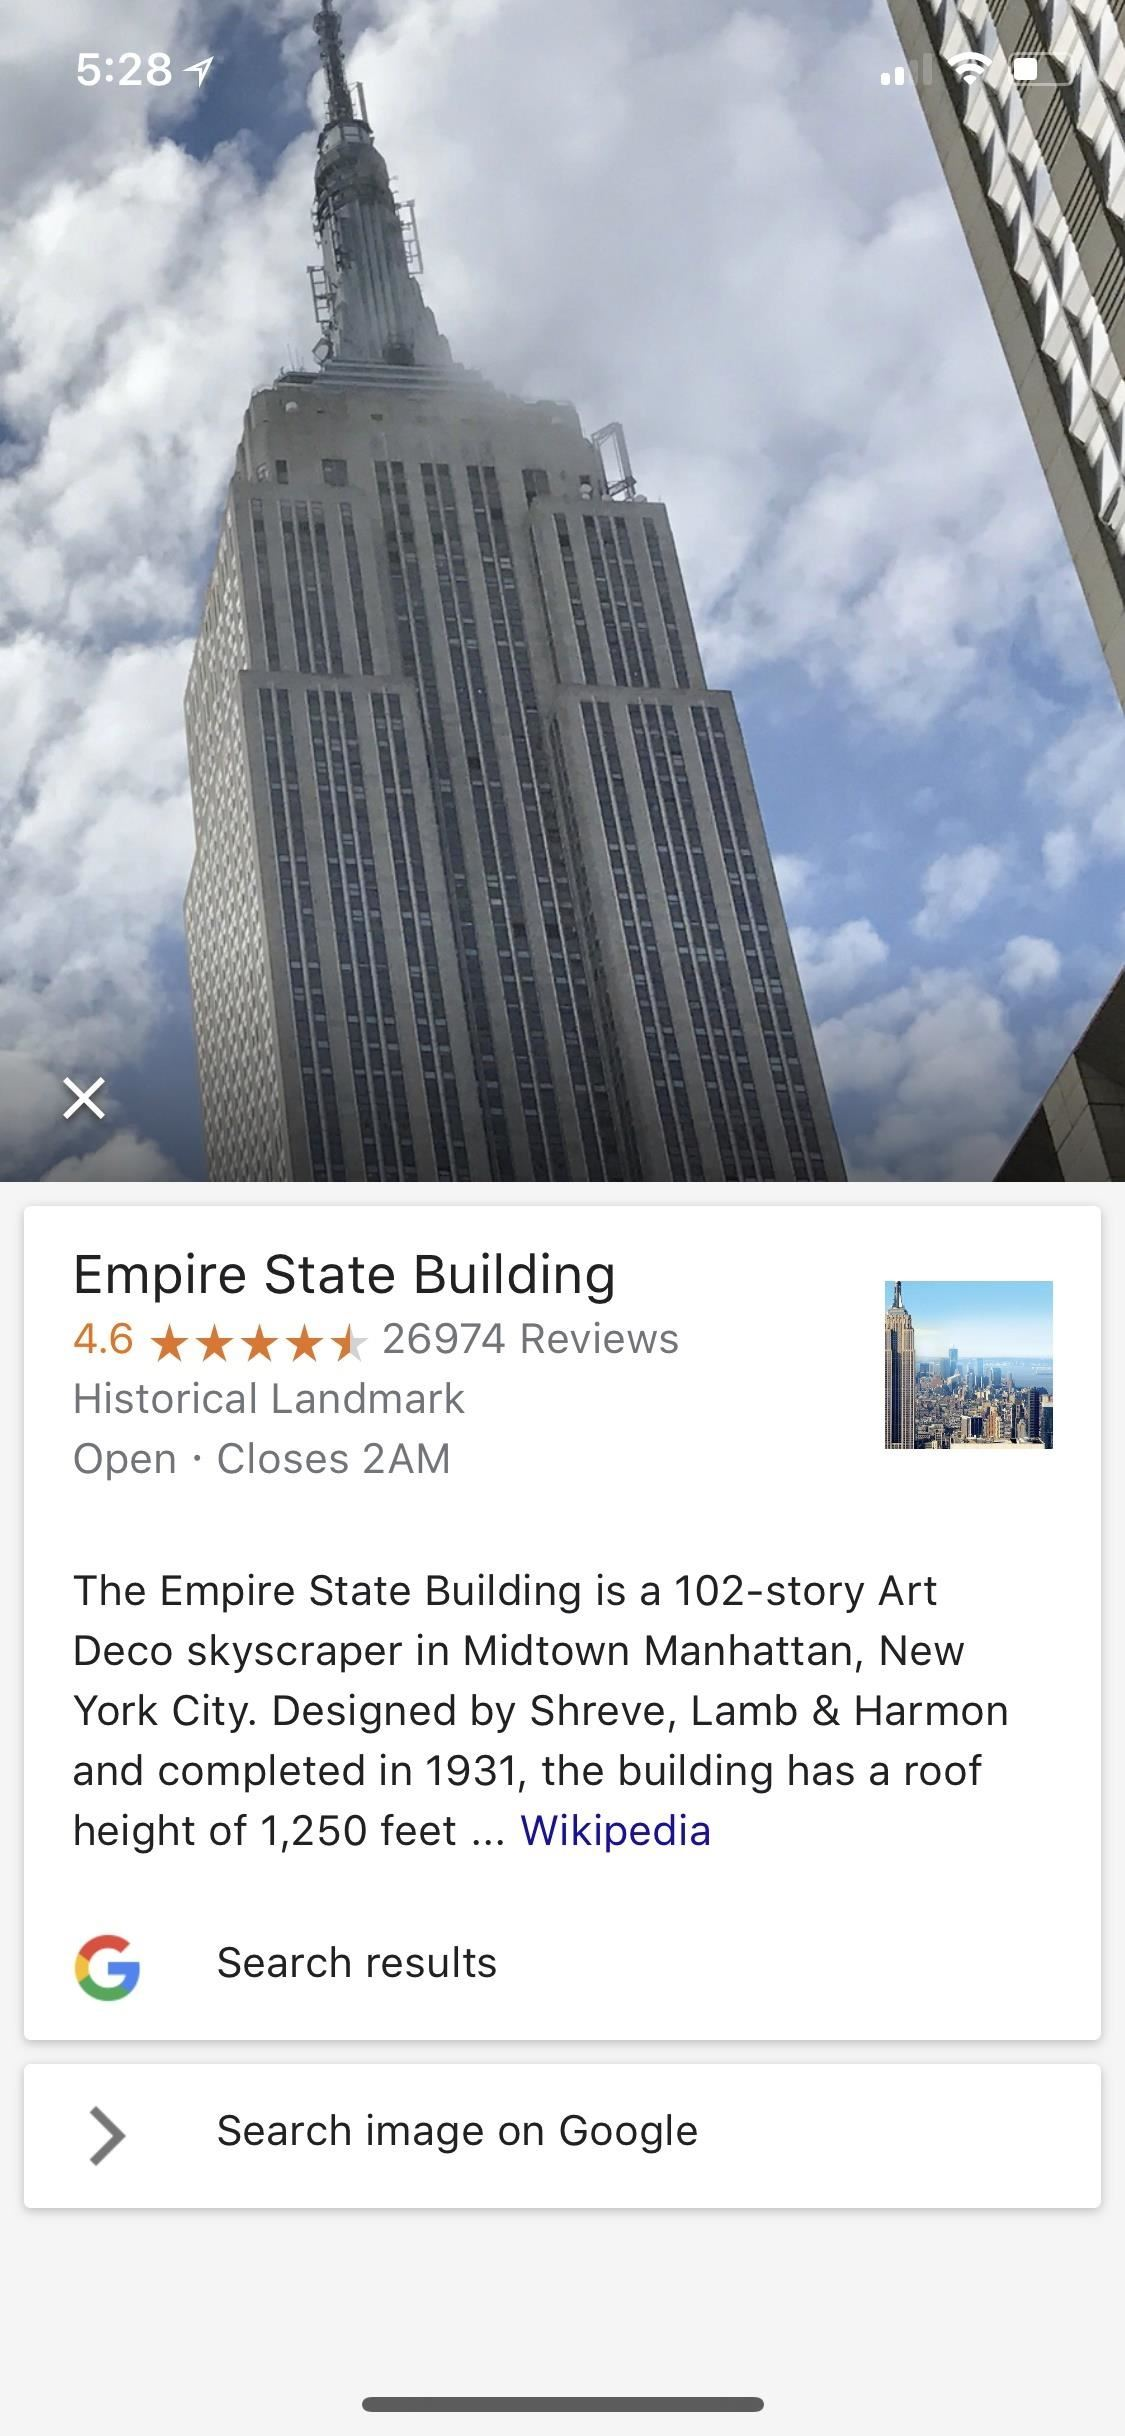 Google Photos 101: How to Use Google Lens to Identify Landmarks in Your Images